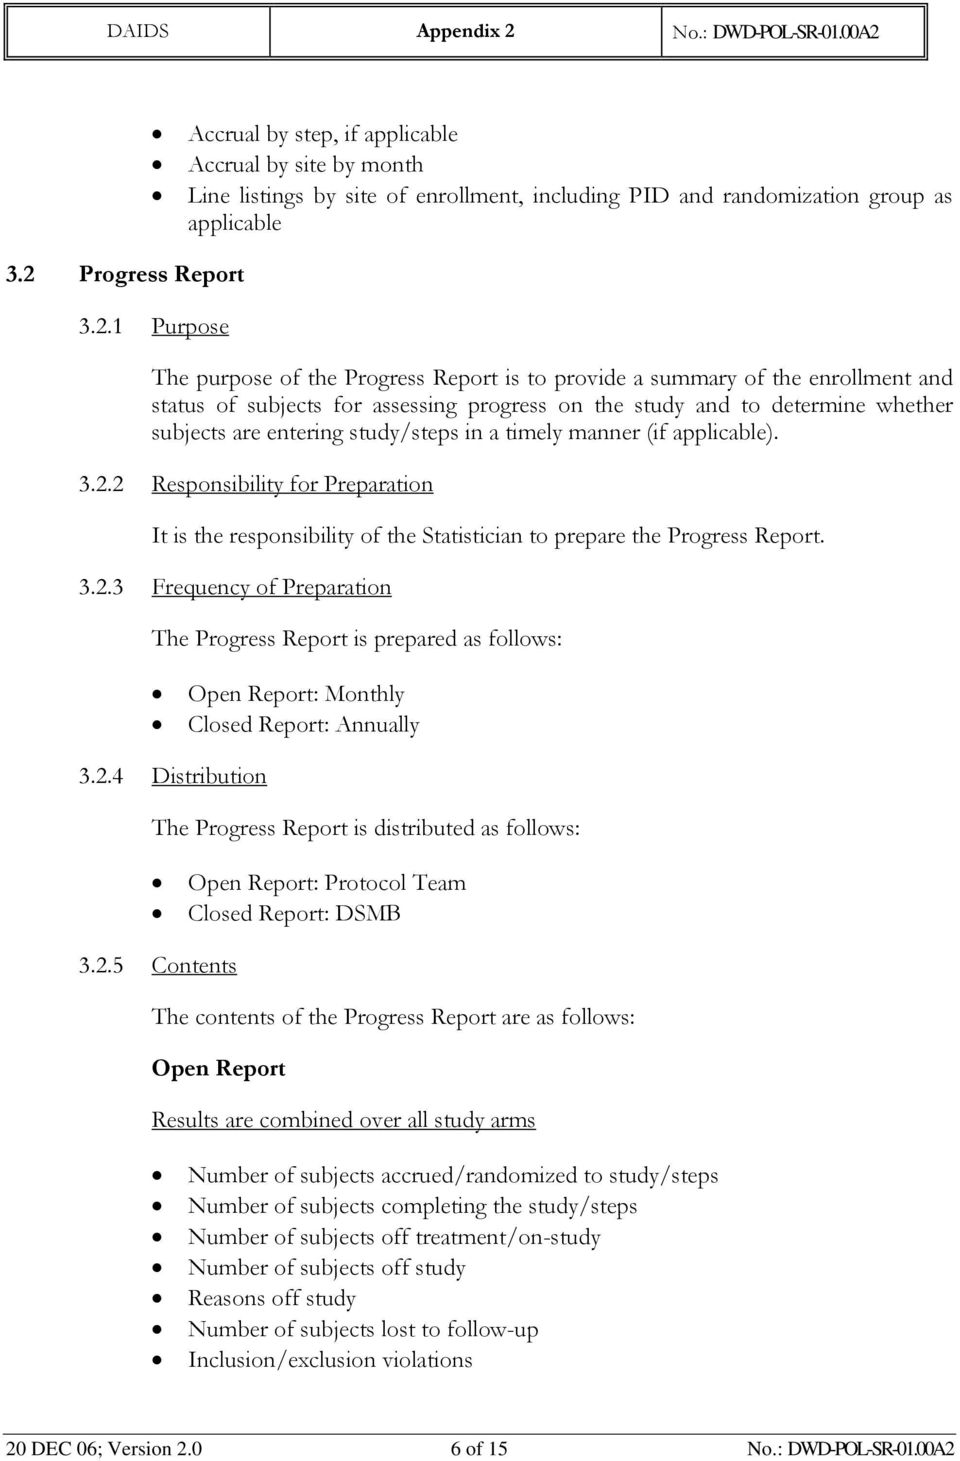 applicable). 3.2.2 Responsibility for Preparation It is the responsibility of the Statistician to prepare the Progress Report. 3.2.3 Frequency of Preparation The Progress Report is prepared as follows: Open Report: Monthly Closed Report: Annually 3.